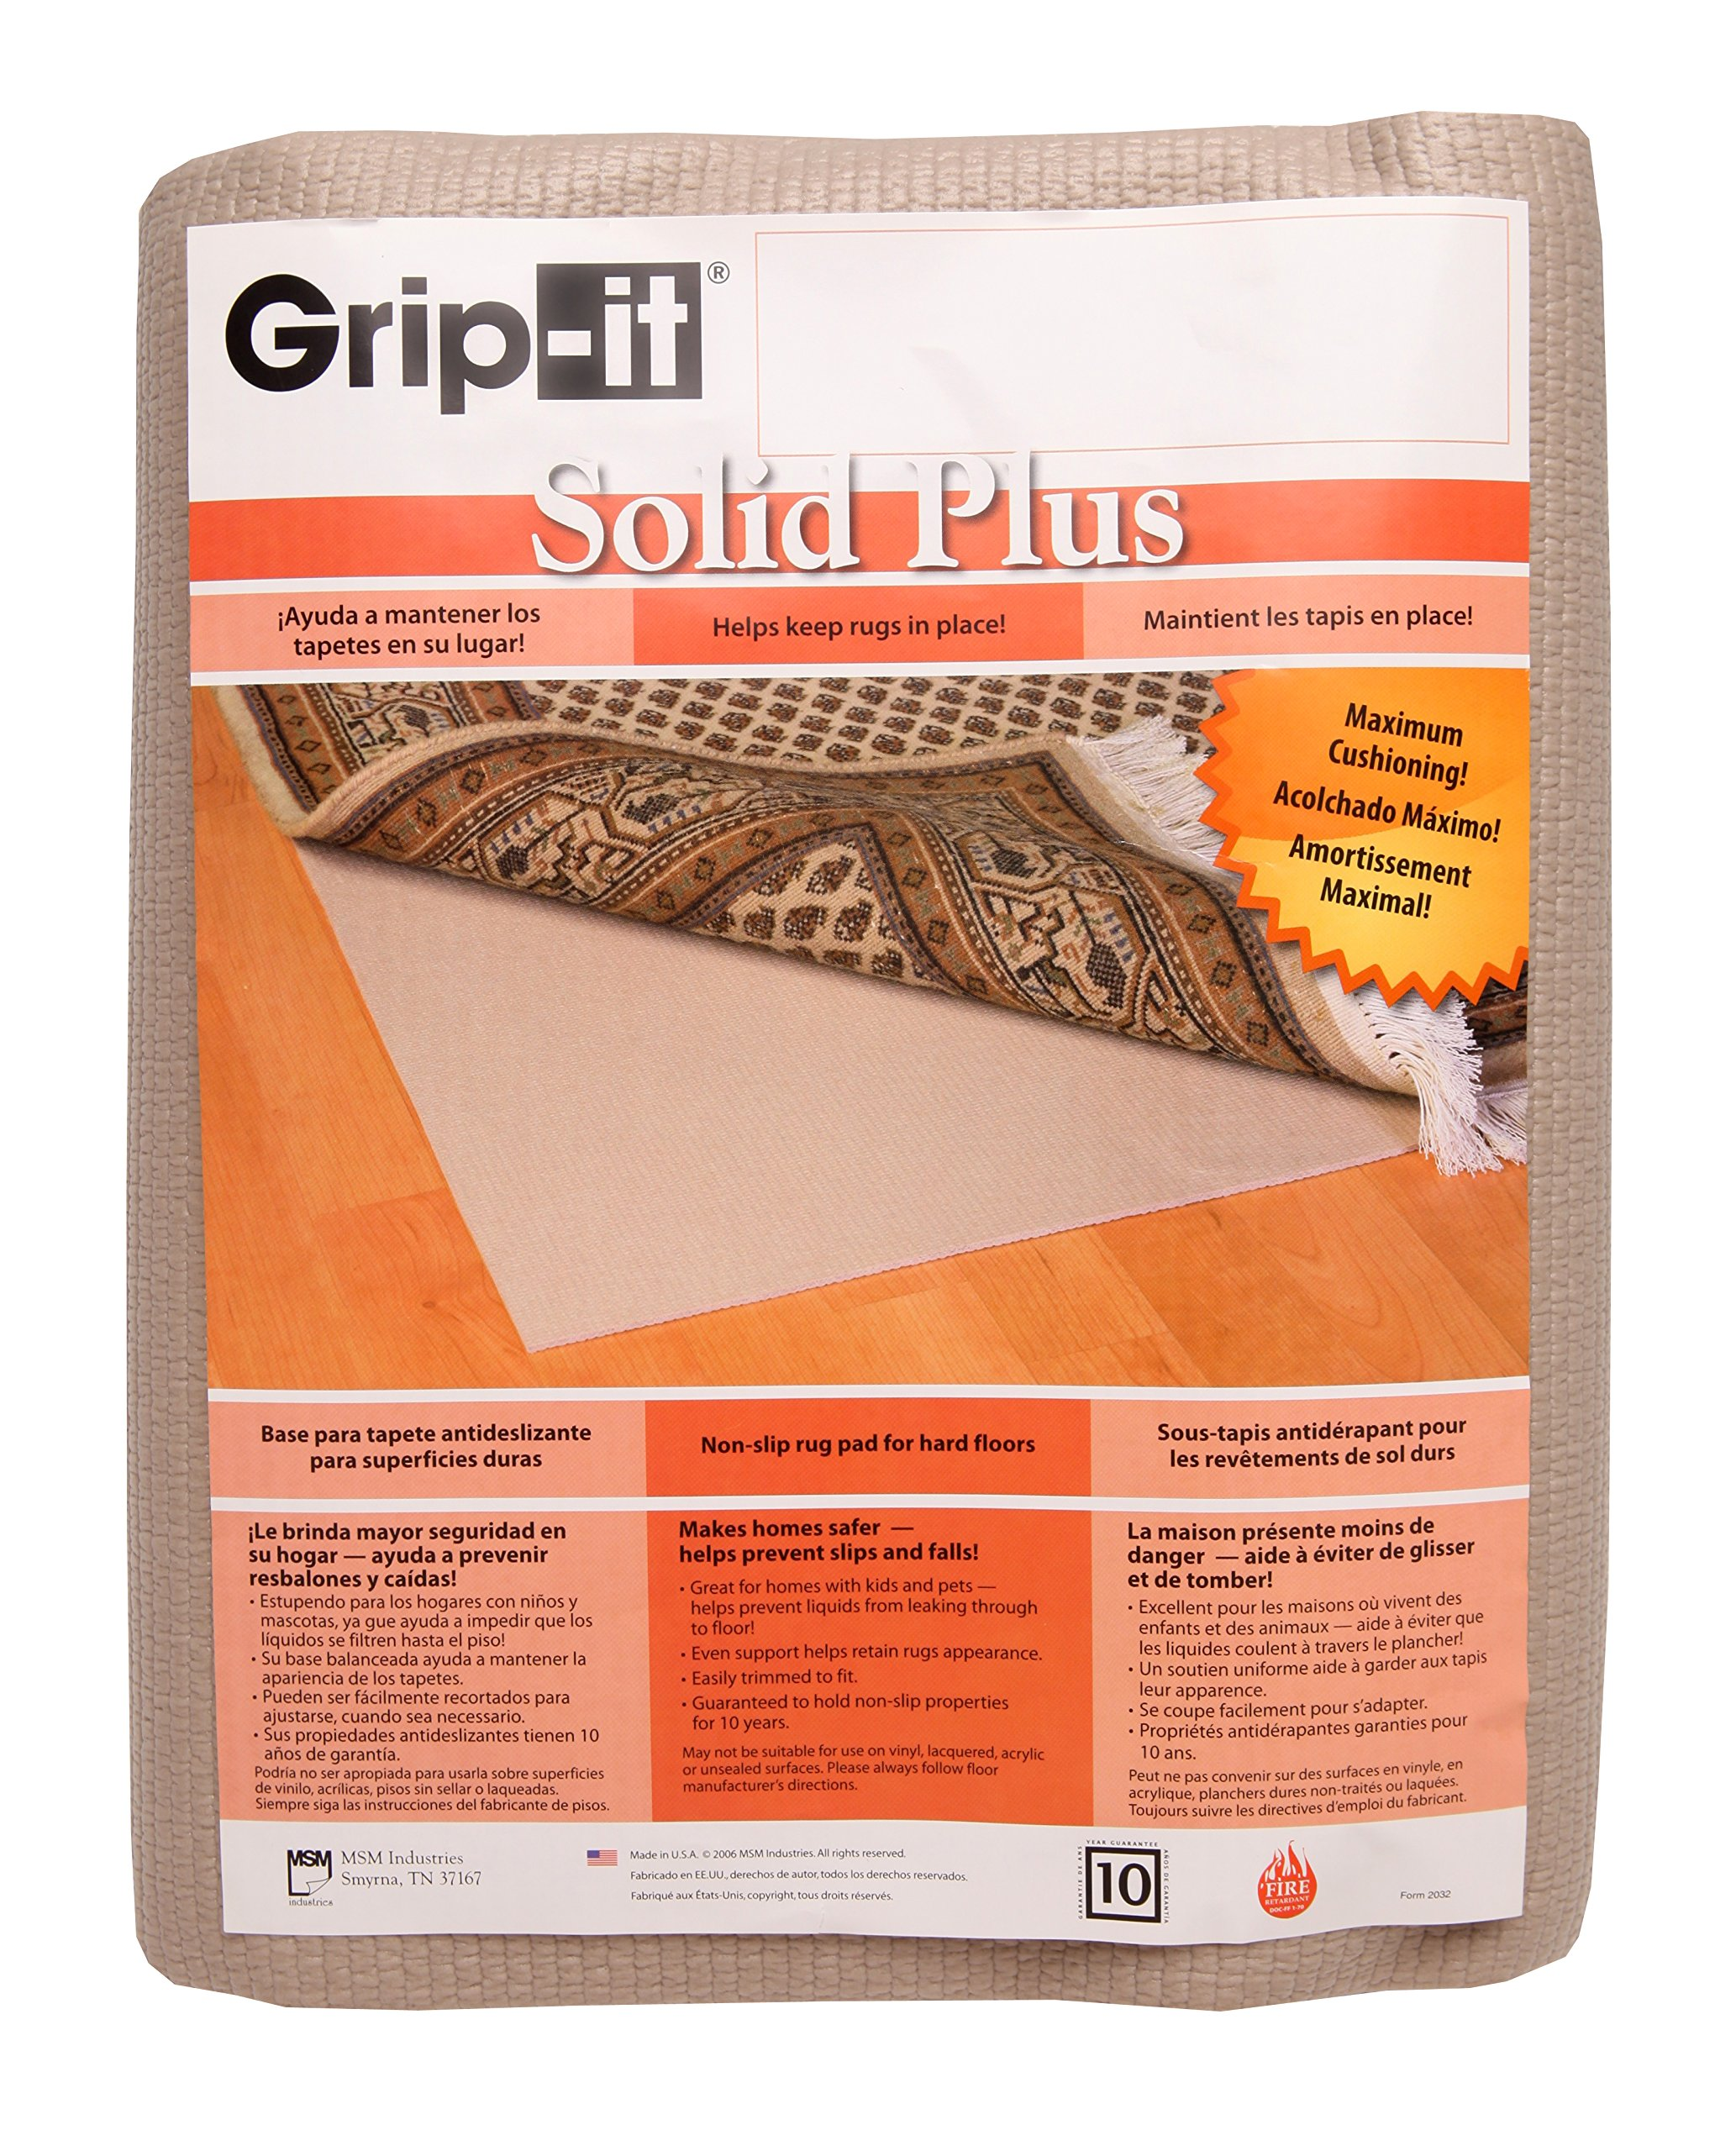 Grip-It Cushioned Non-Slip Rug Pad for Rugs on Hard Surface Floors, 10 by 14-Feet by Grip-It